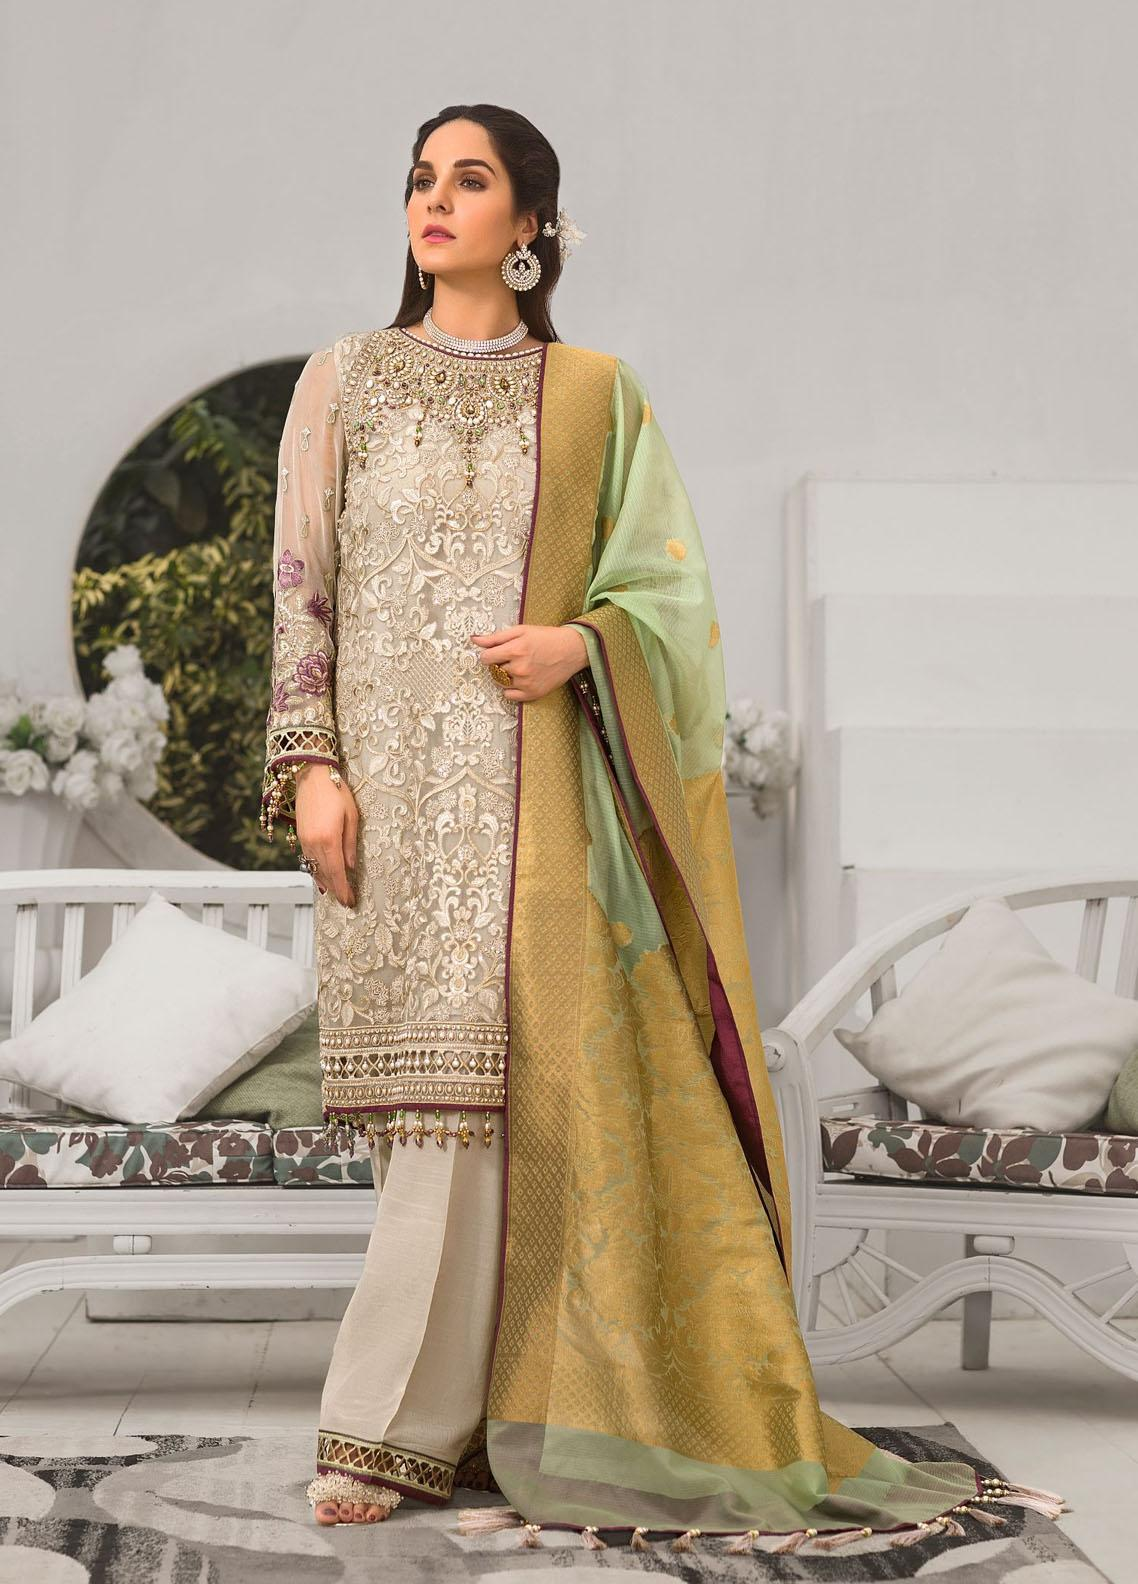 Safeera by Flossie Embroidered Chiffon Unstitched 3 Piece Suit FL20-SF6 02 Glimmer Blush - Luxury Collection